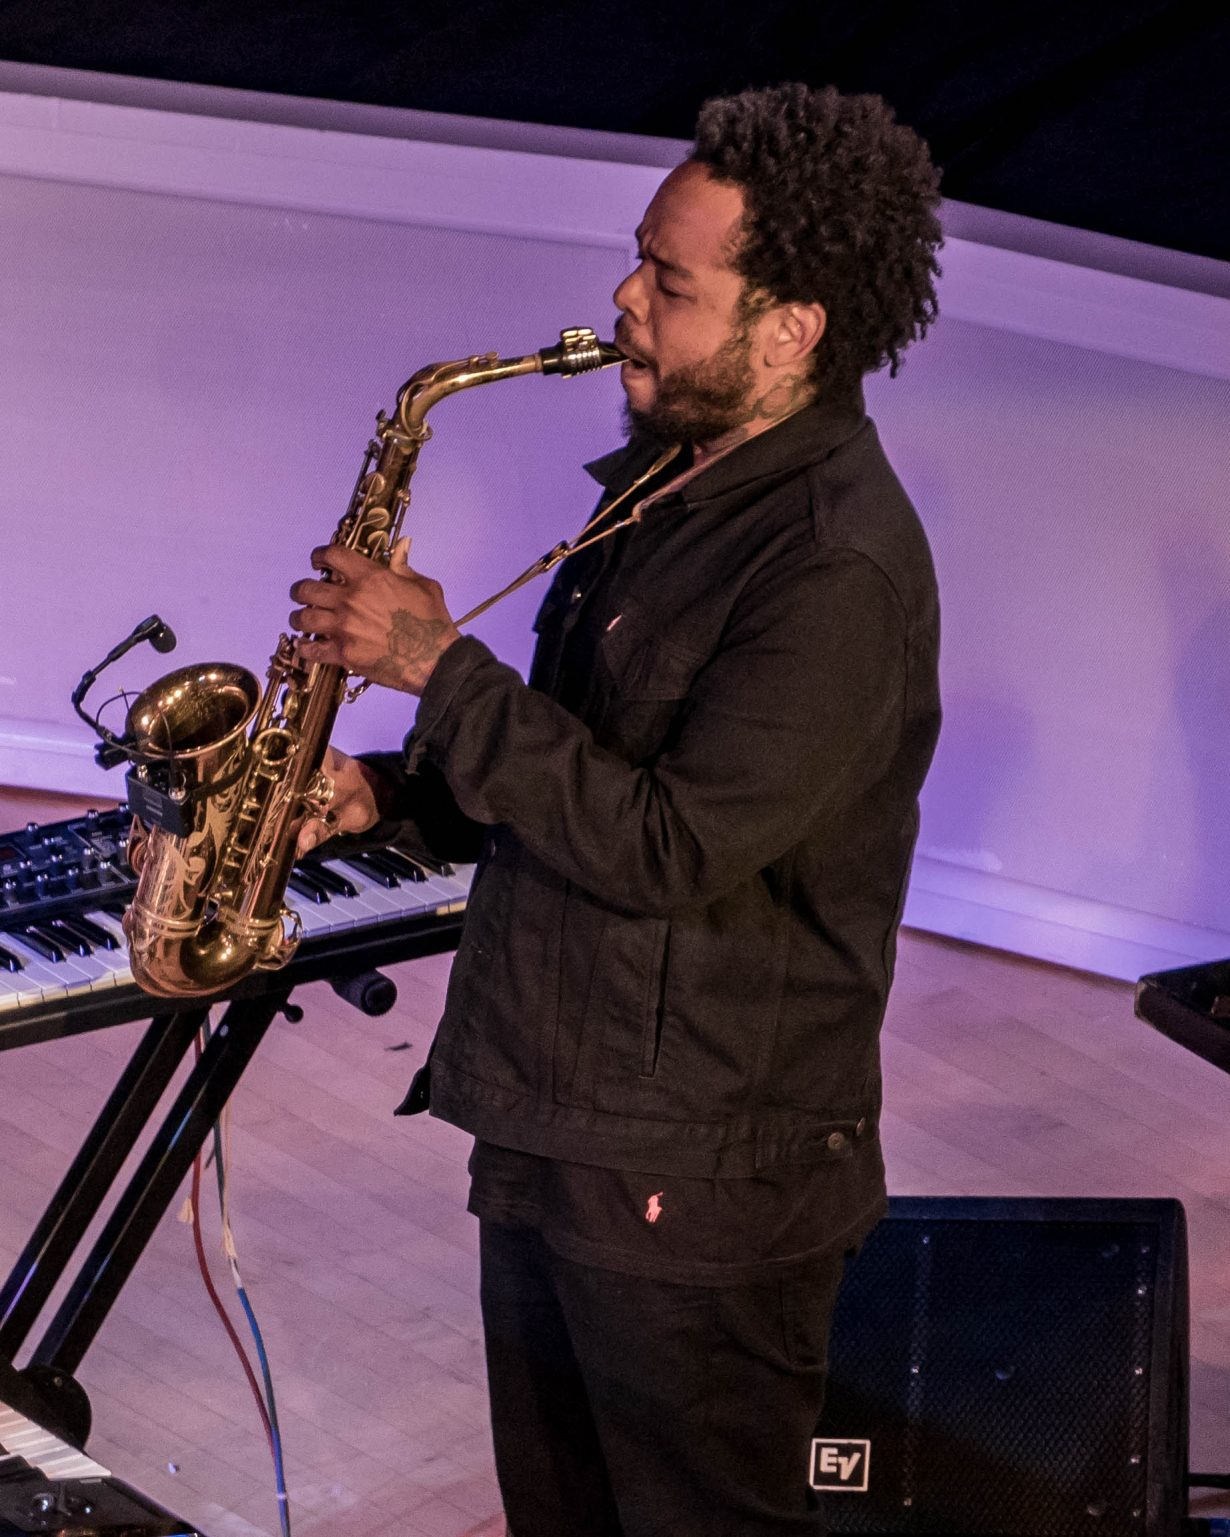 Terrace Martin. Herbie Hancock. Chicago Symphony Center 2017 Chicago Il. Photo by Kevin Baker 1230x1537 Photos: Chicago Music Photo Gallery of 2017 Take a Look Through Our Lens